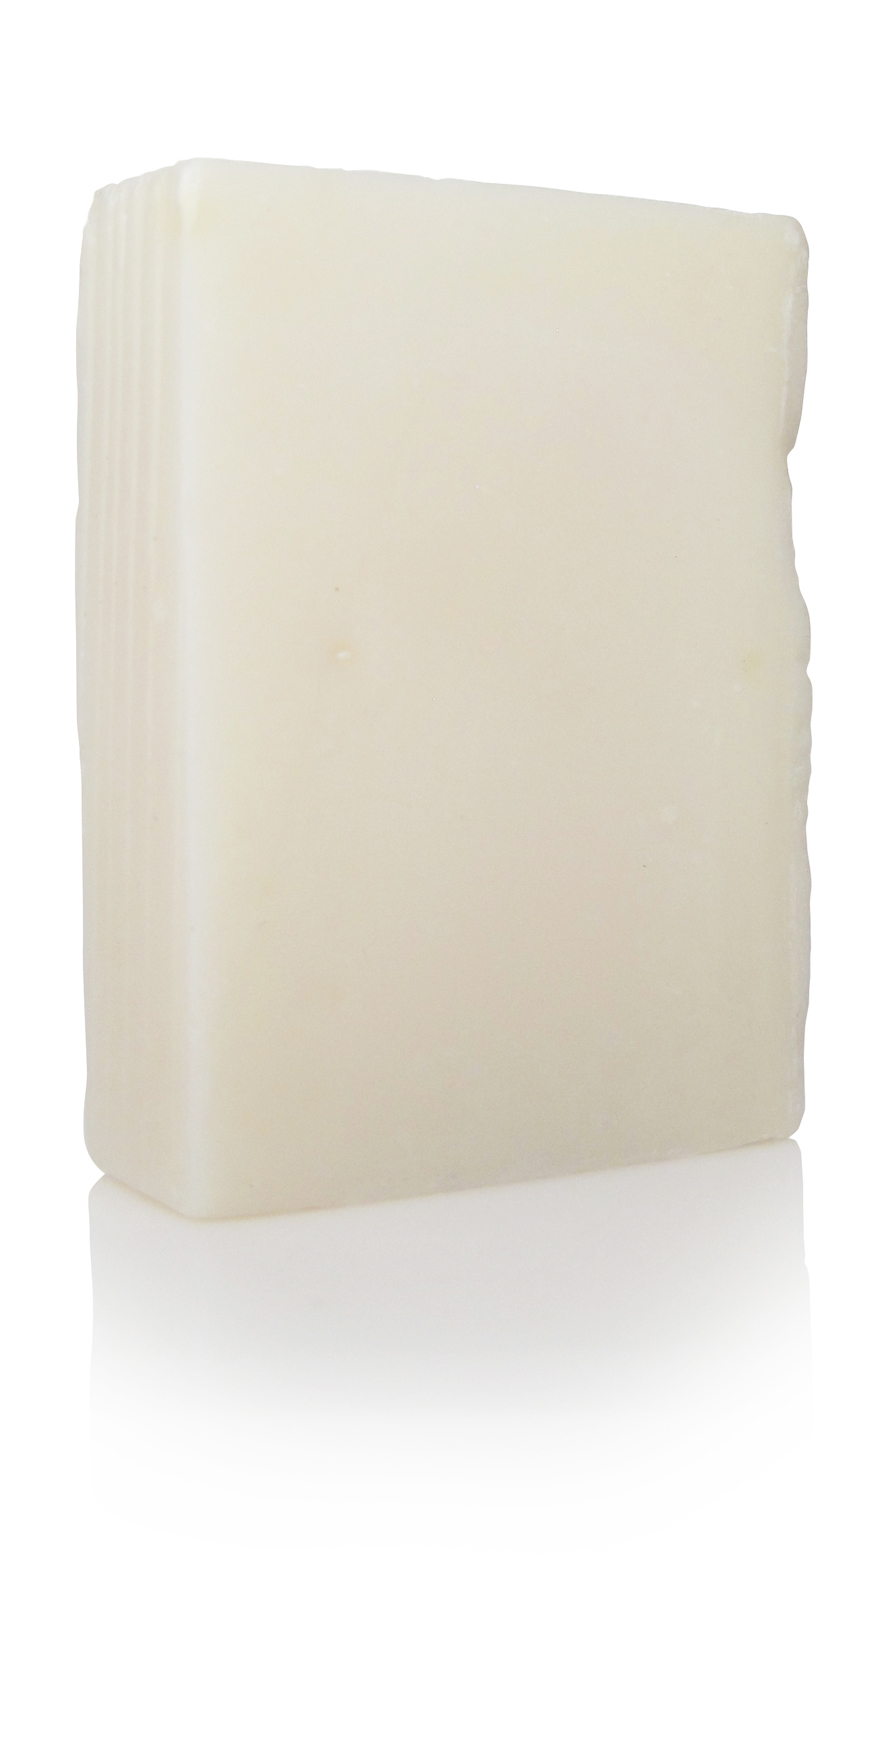 unscented all natural Purity soap bar